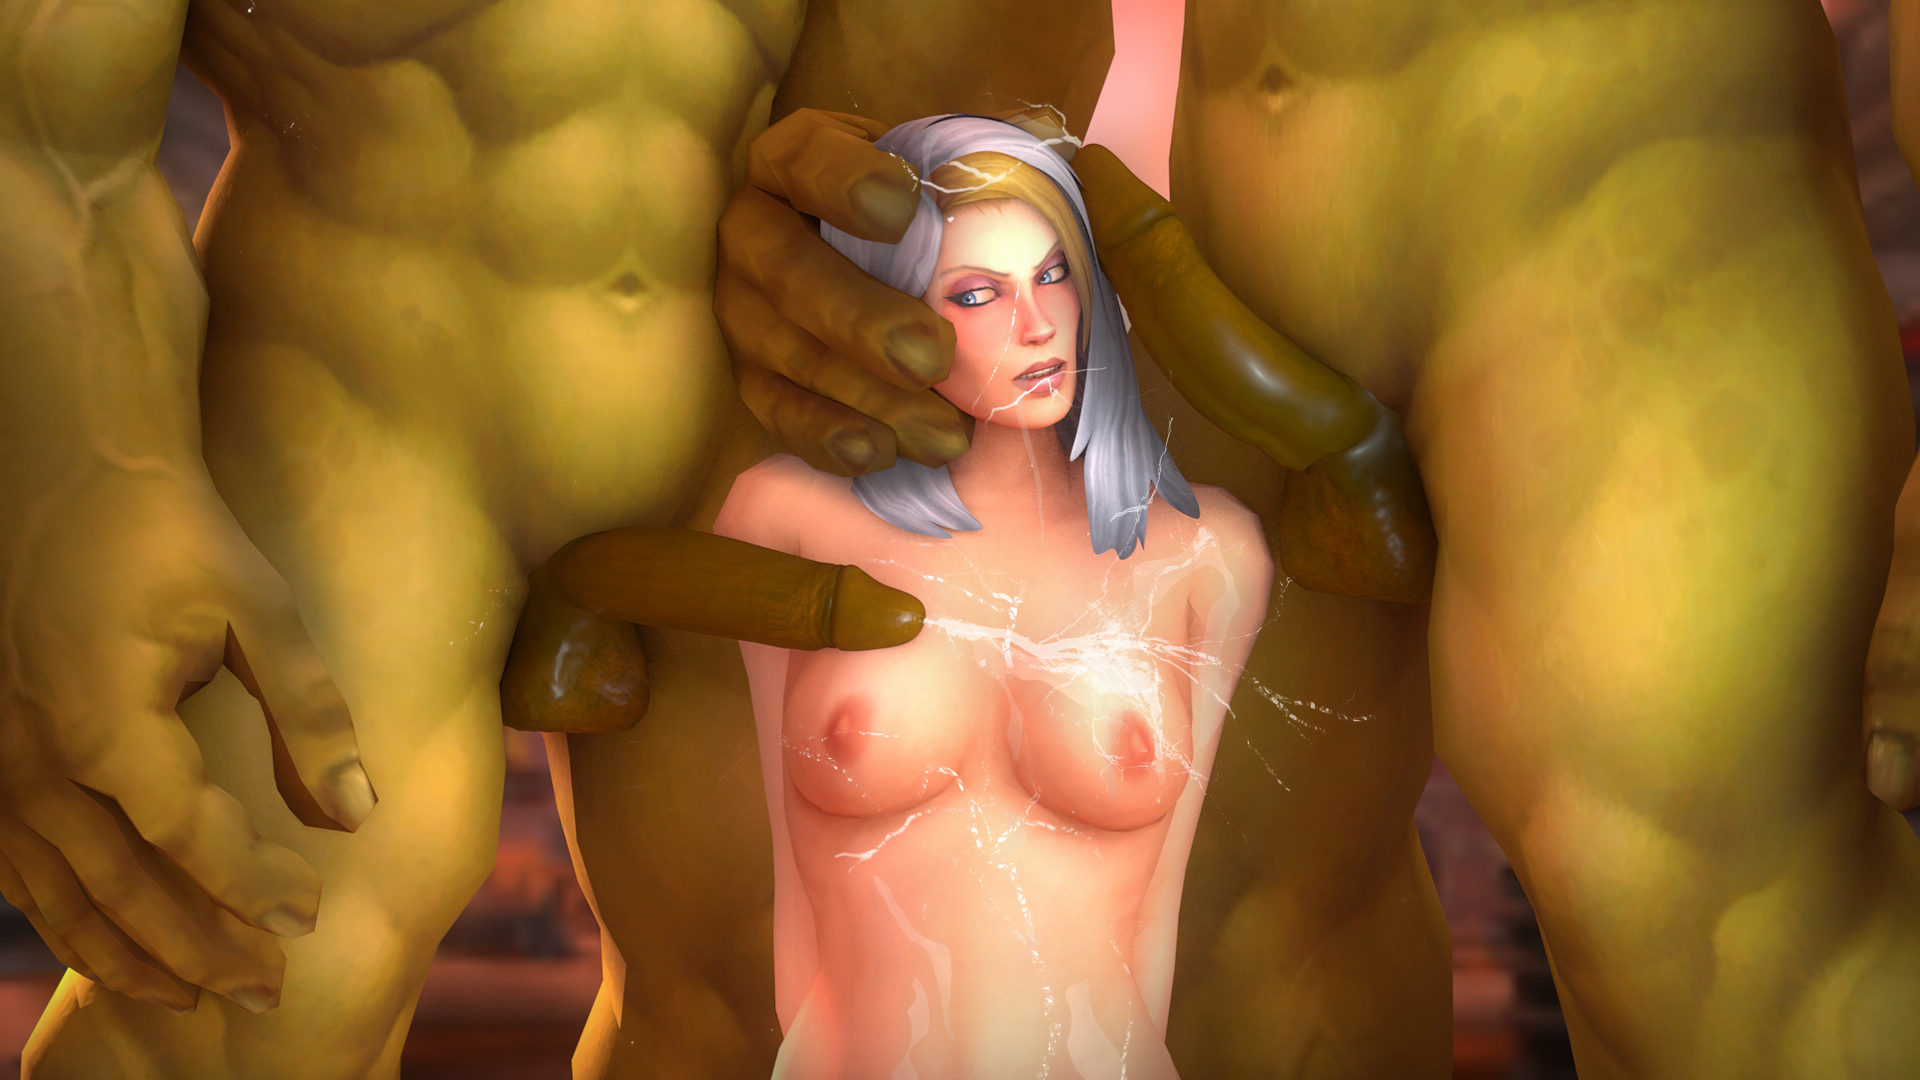 Warcraft 3 girls pron sexy photo